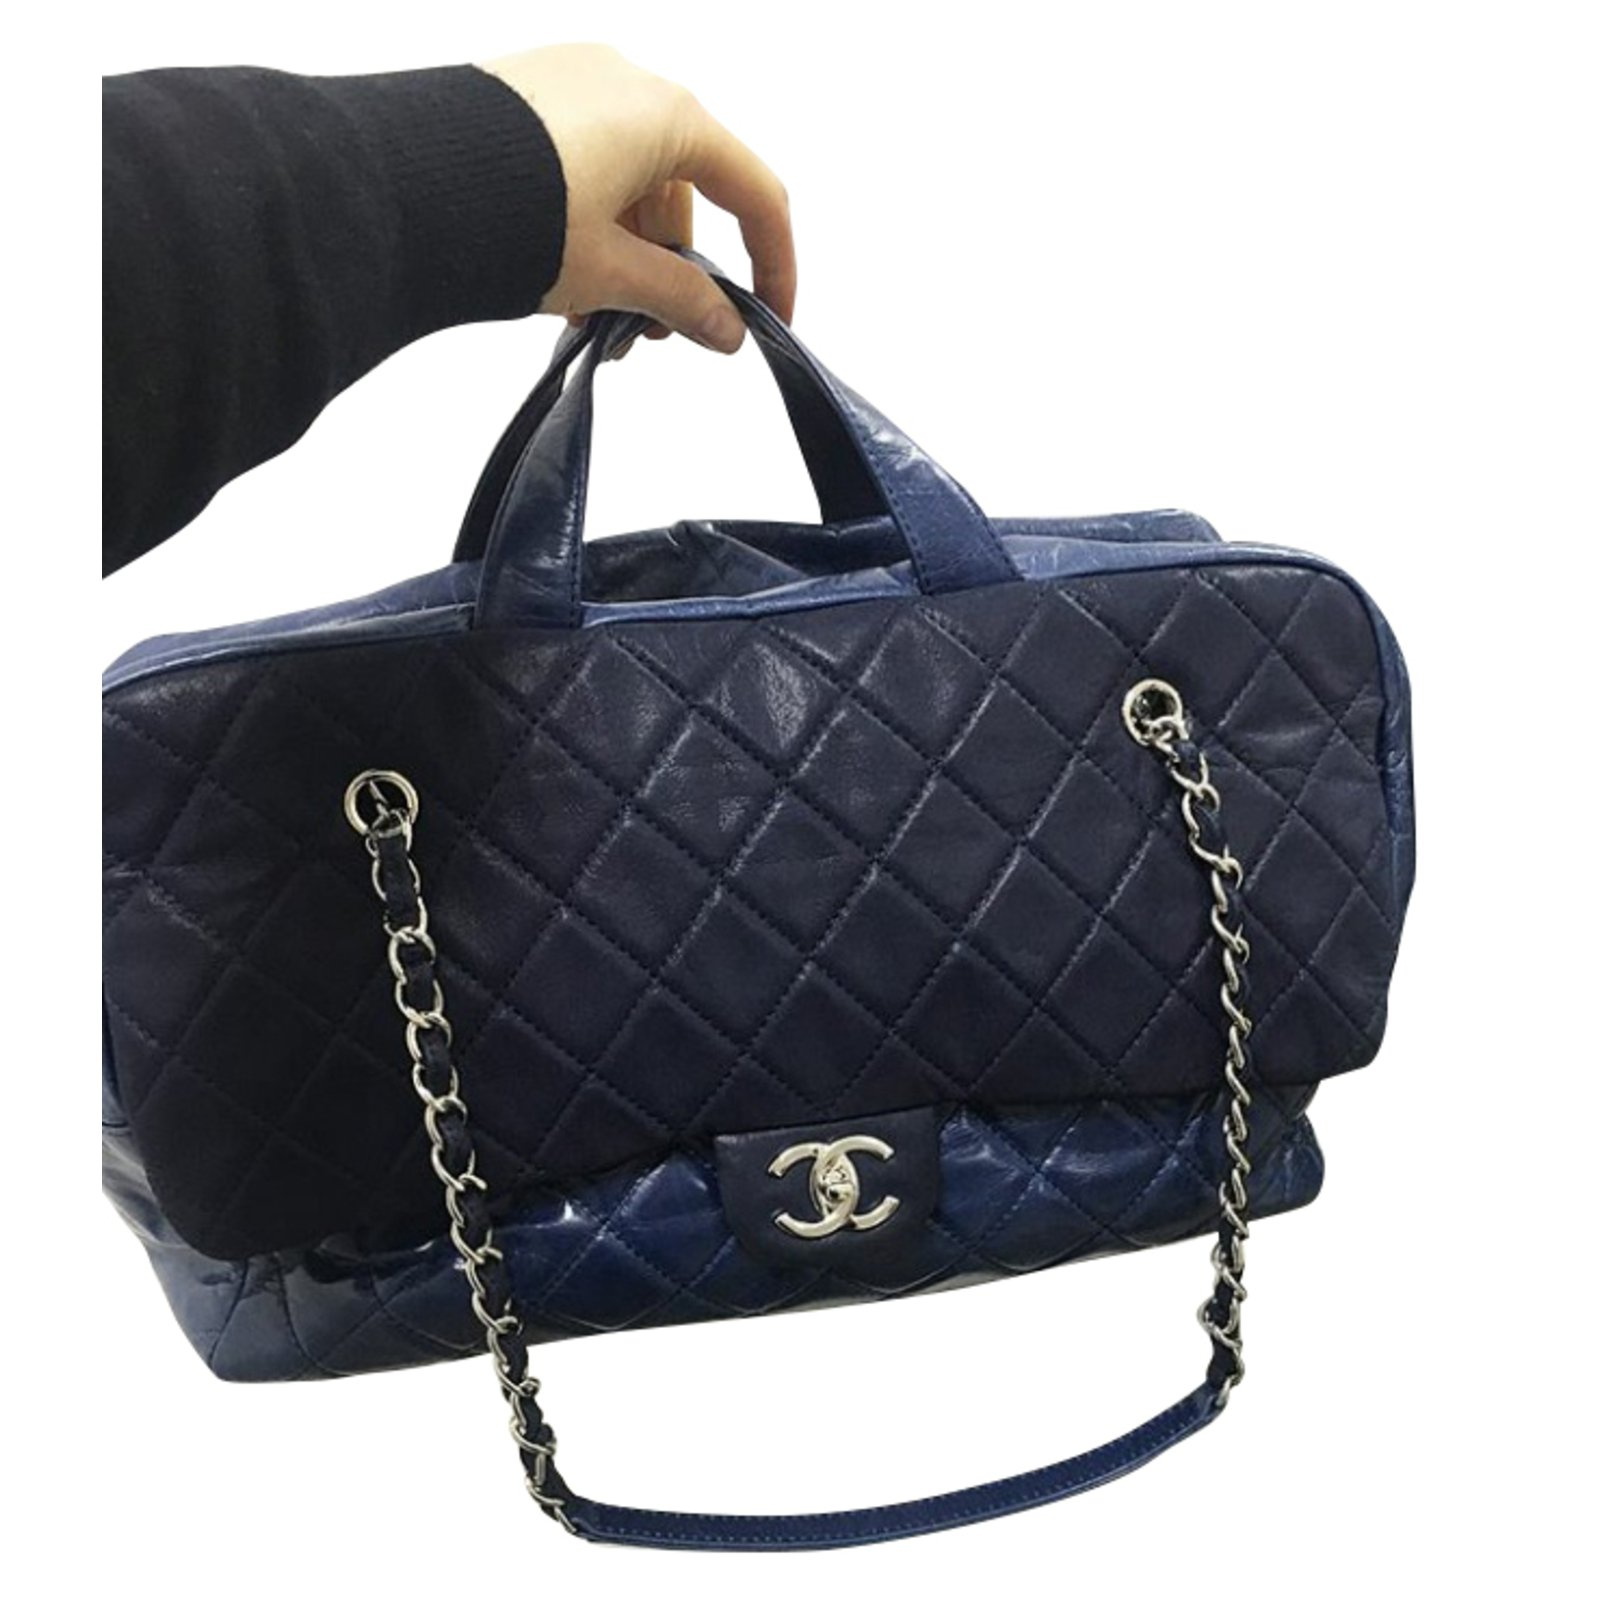 b4d08e36a Chanel Travel Bag With Wheels   The Shred Centre